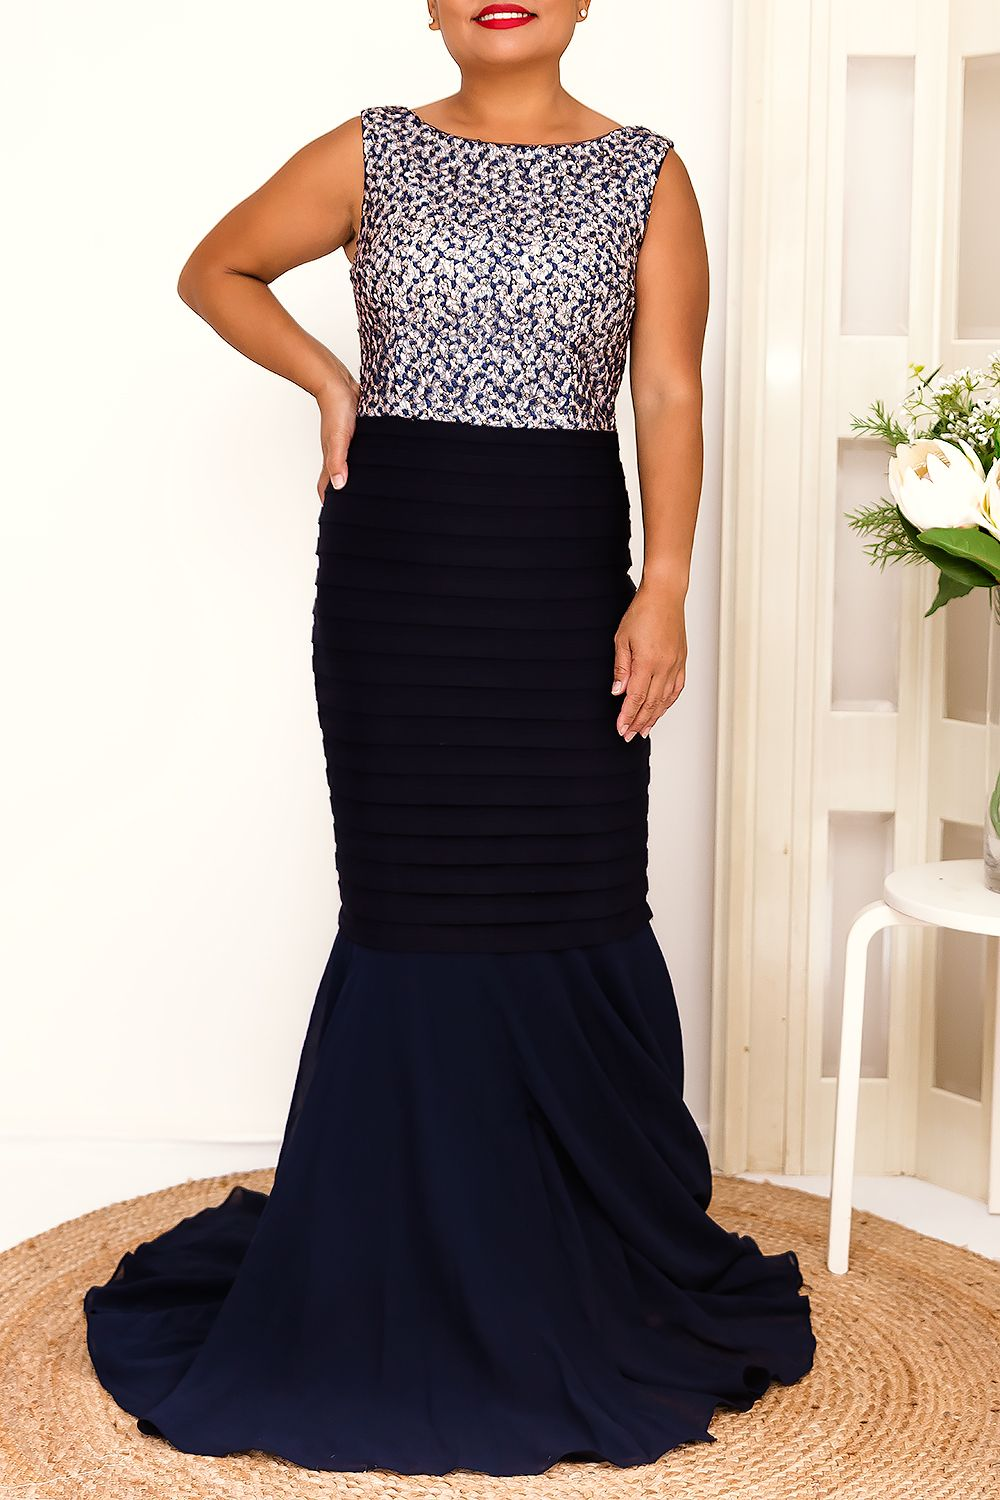 ROUX MAXI DRESS IN NAVY - Two Sisters Instyle